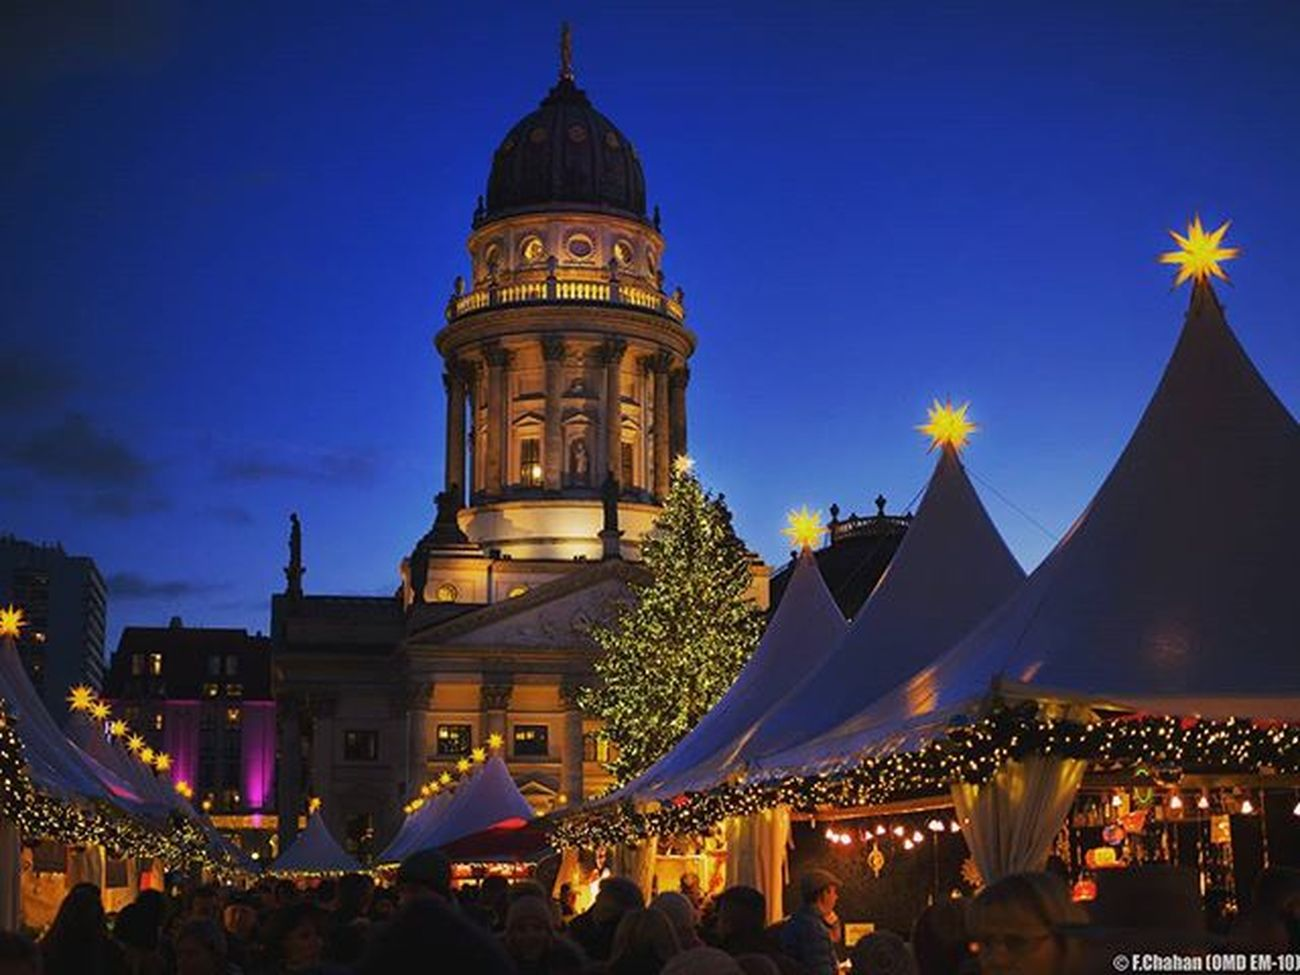 Berlin Gendarmenmarkt Weihnachtszeit Advent 3Advent Weihnachtenberlin Christmasinberlin Weinachtsmarkt  Weekend December Dezember Dezembertage Adventszeit Christmasmarket Christmaslights Weihnachtsstern Together Myhometown Berlincity Berlinevenings Mitte Berlinmitte Visit_berlin Mynextxmas